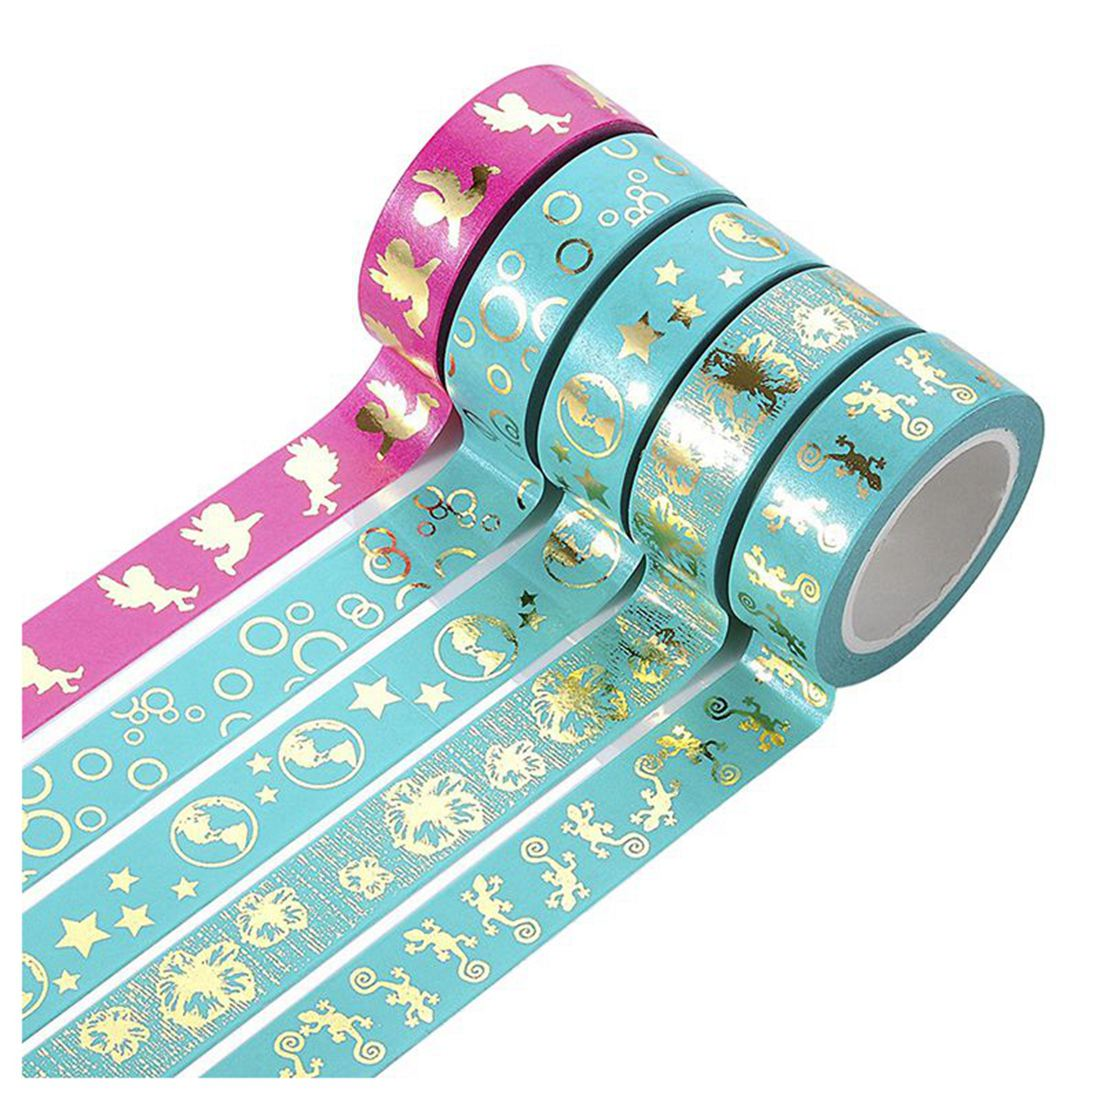 PPYY NEW -Decorative DIY Tape Washi Sticky Paper Foil Masking Adhesive Washi Tape For Scrapbooking DIY Decoration 5xRoll, 9cmx5m creative life edition washi paper tape 9cm delicacy small objects decorative tape